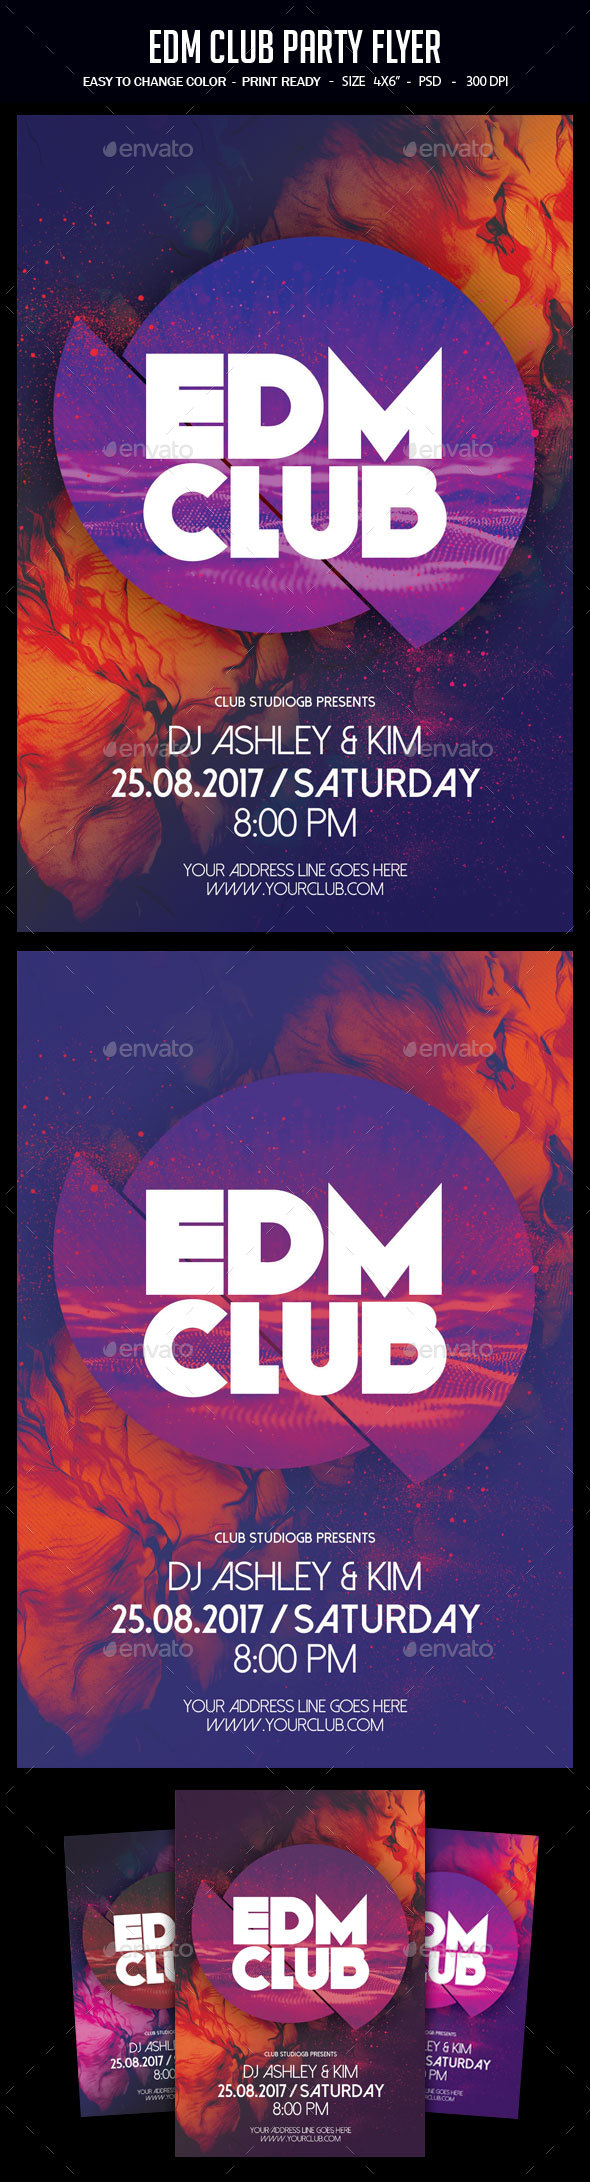 EDM Club Party Flyer - Clubs & Parties Events